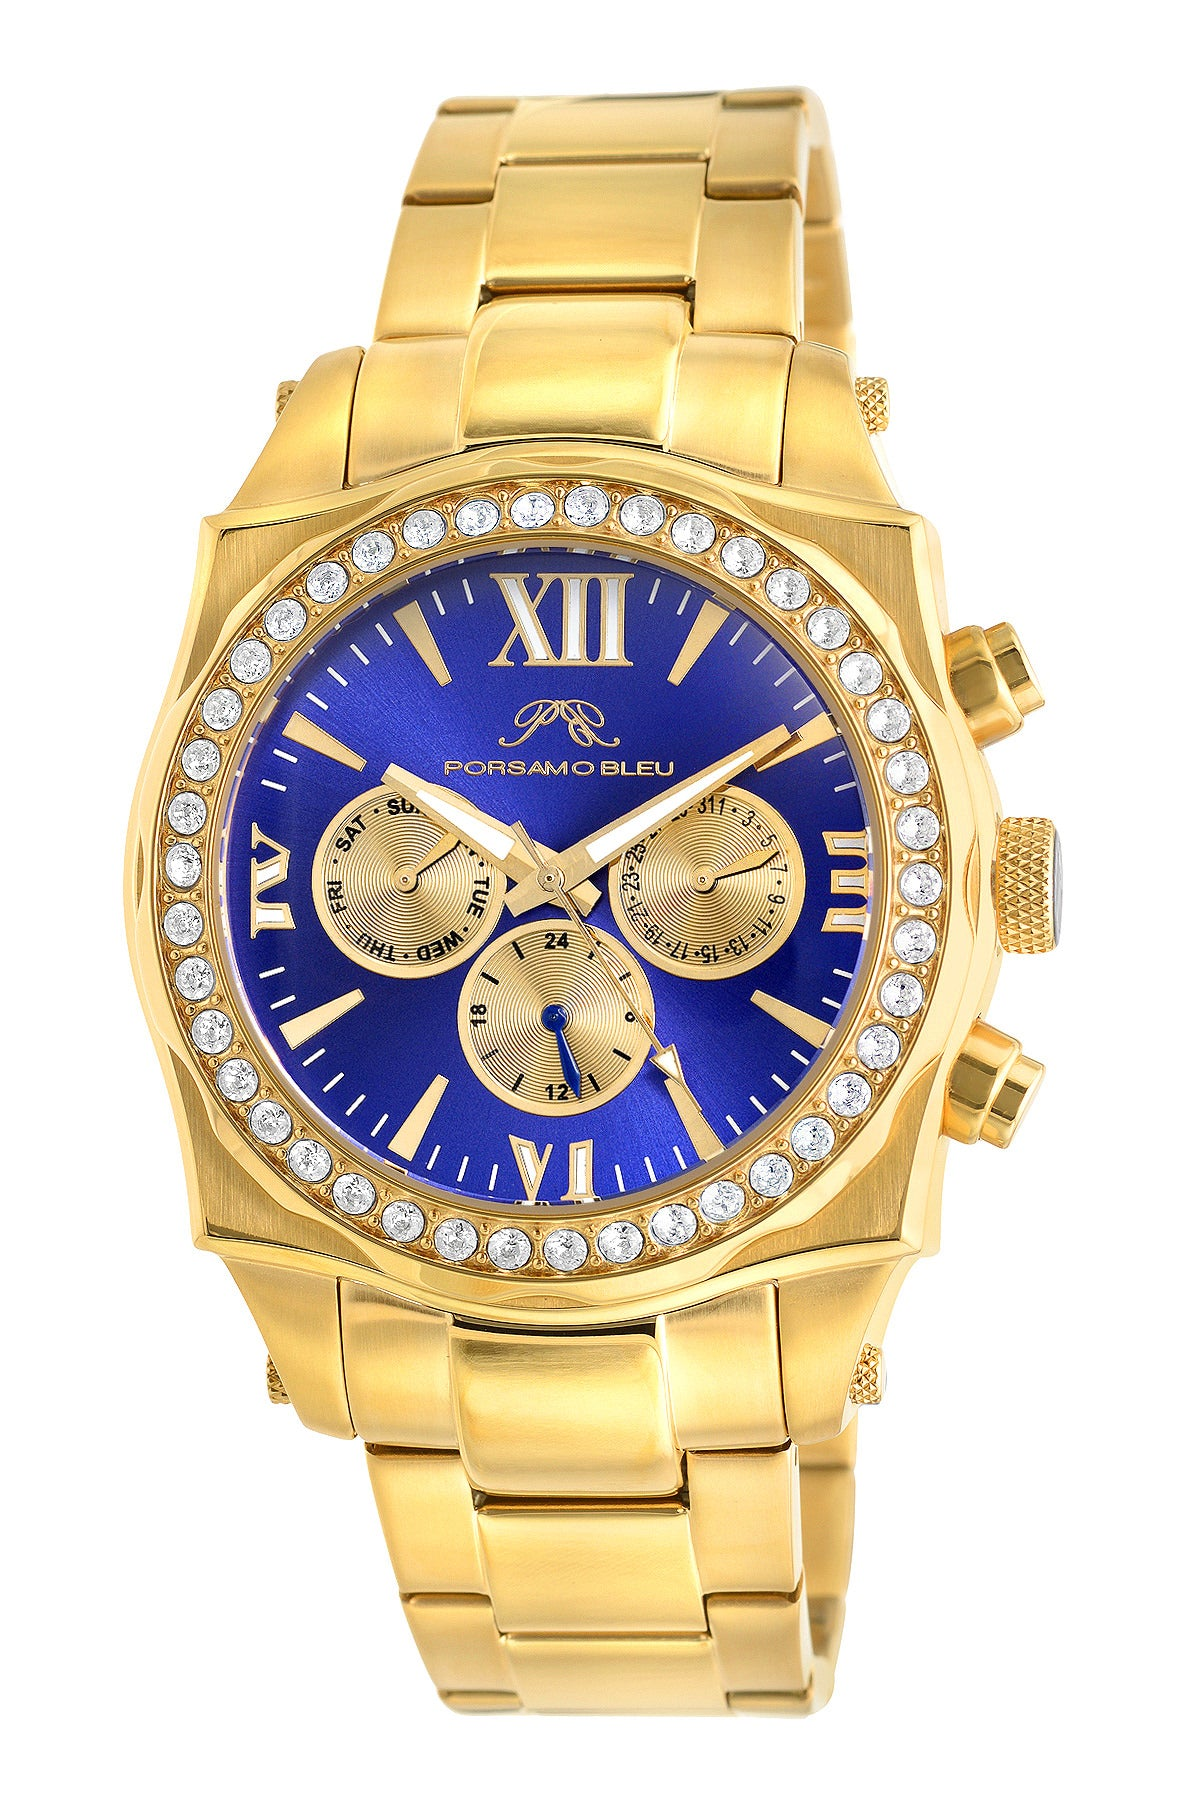 Porsamo Bleu Milan Crystal luxury women's stainless steel watch, Swarovski® crystals, gold, blue, 037FMCS